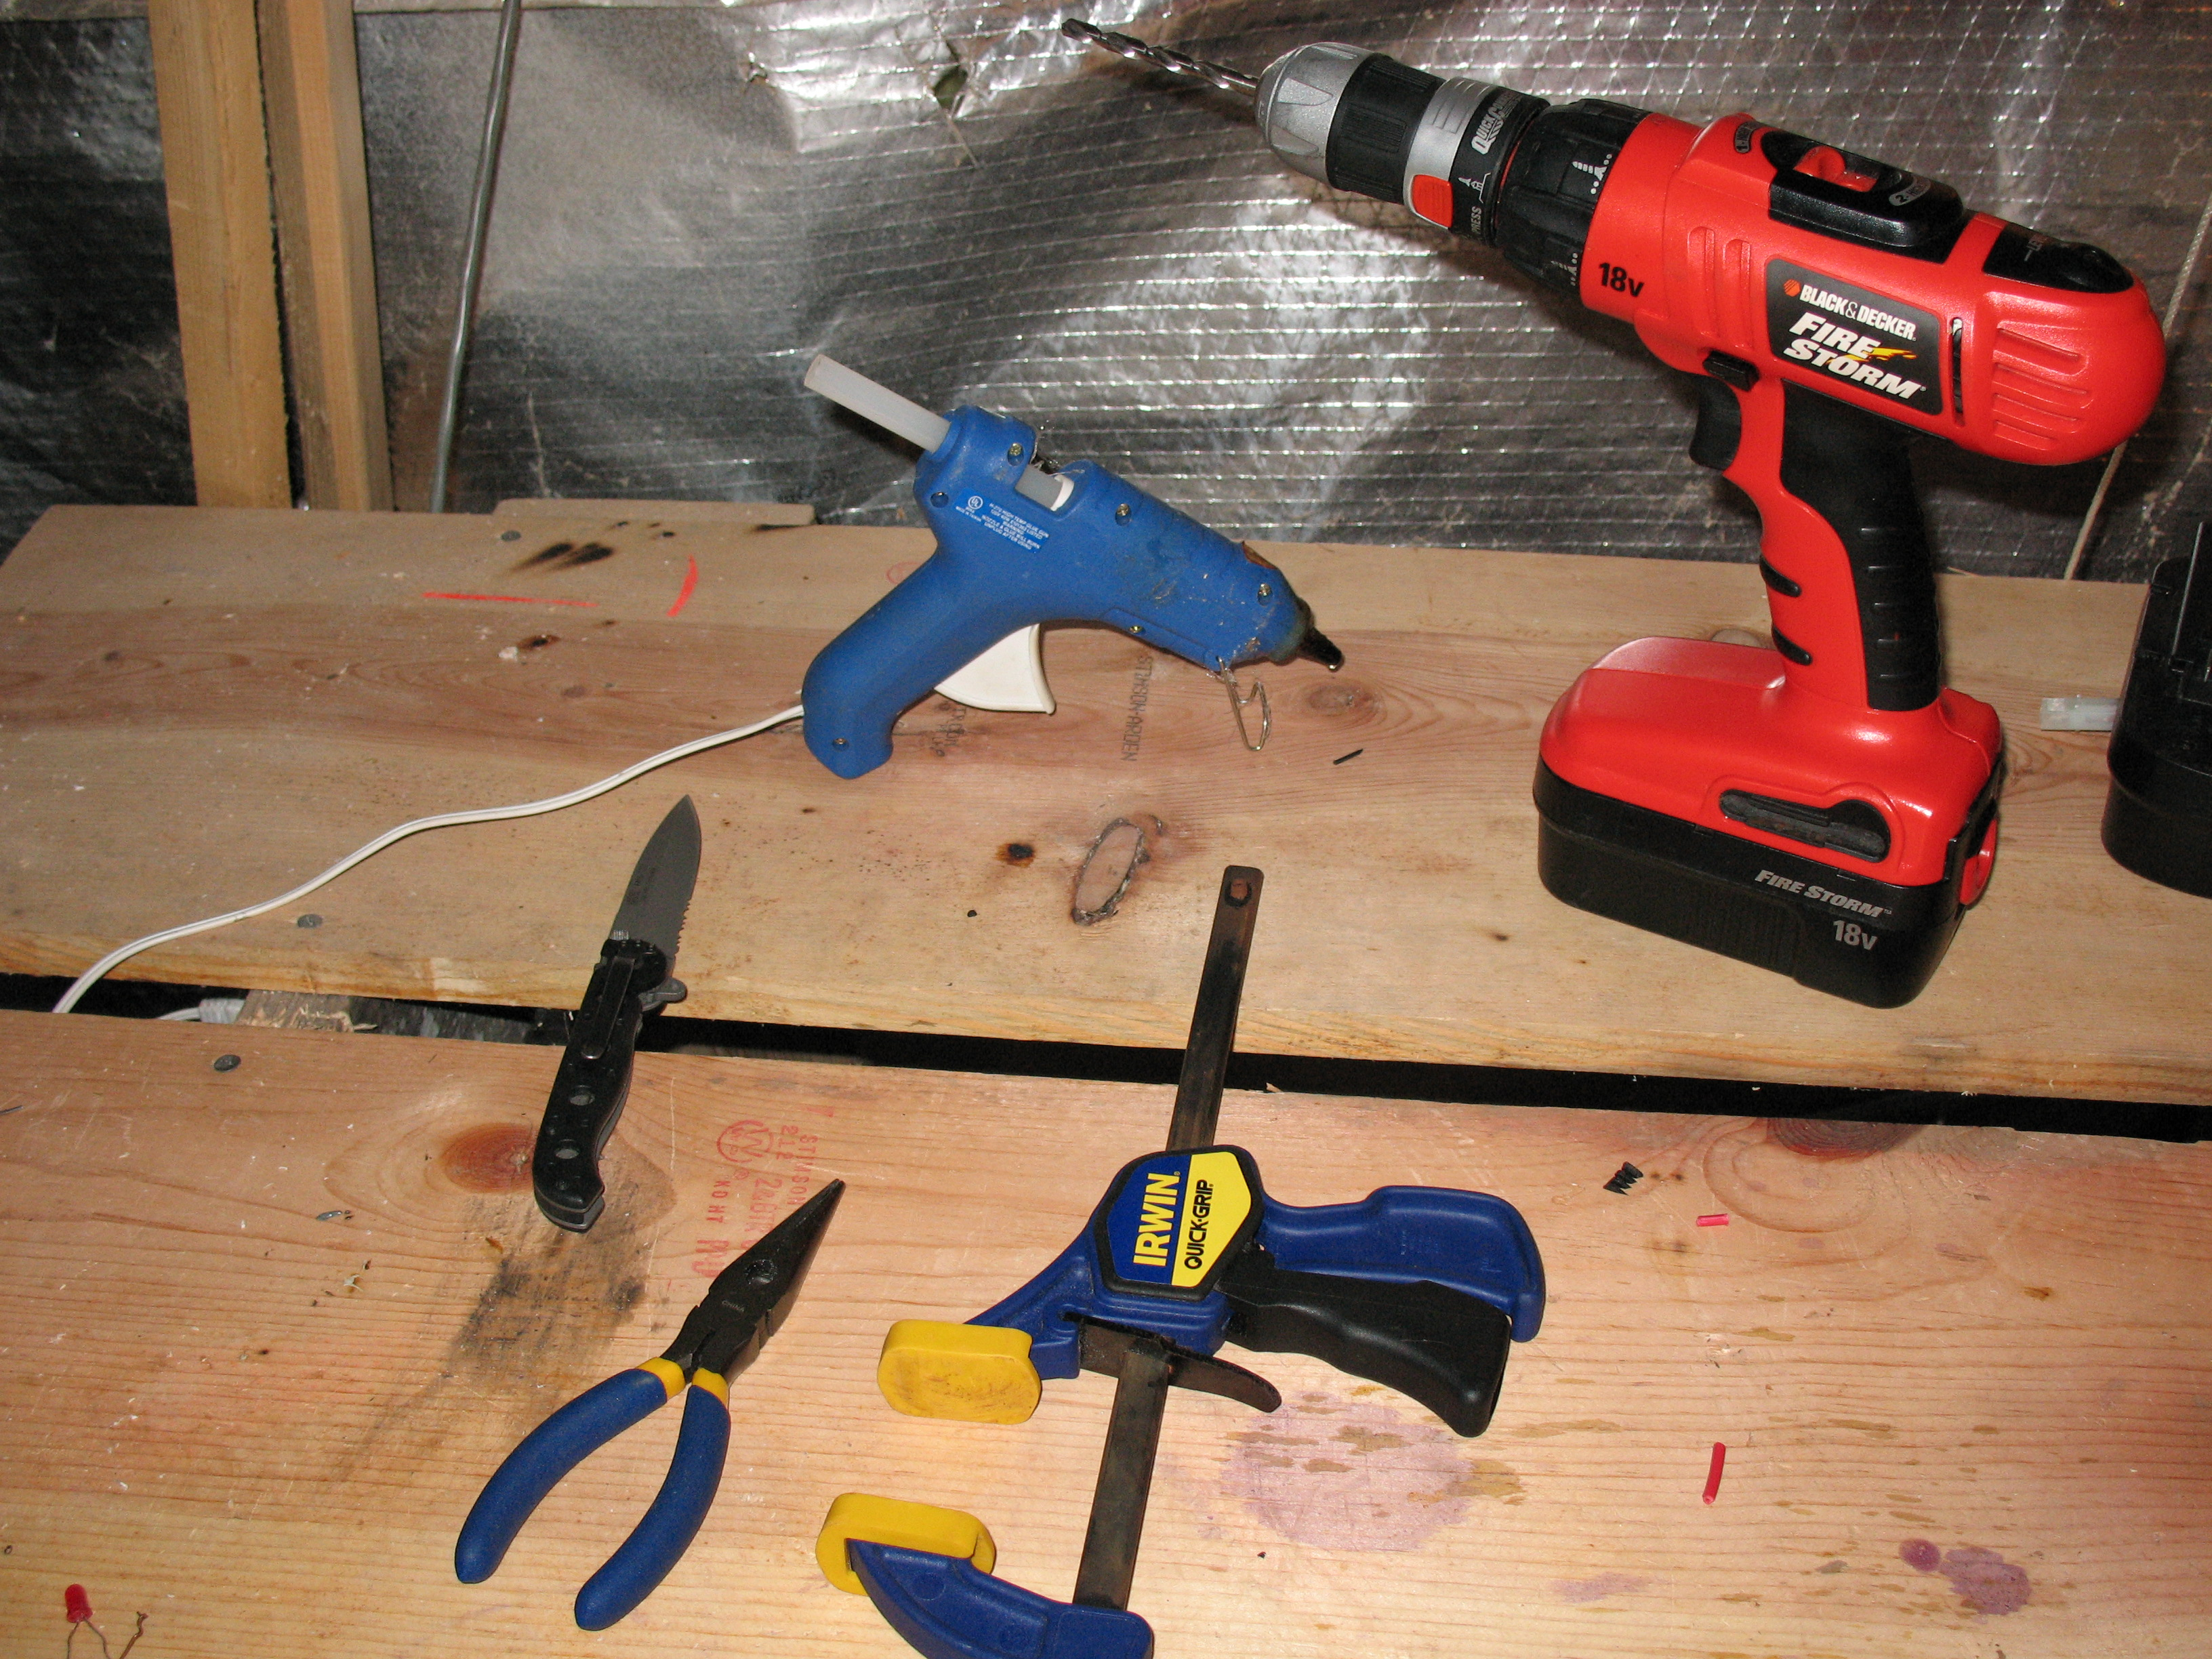 Picture of Mod a Cordless Power Tool Battery to Run With Wall Current